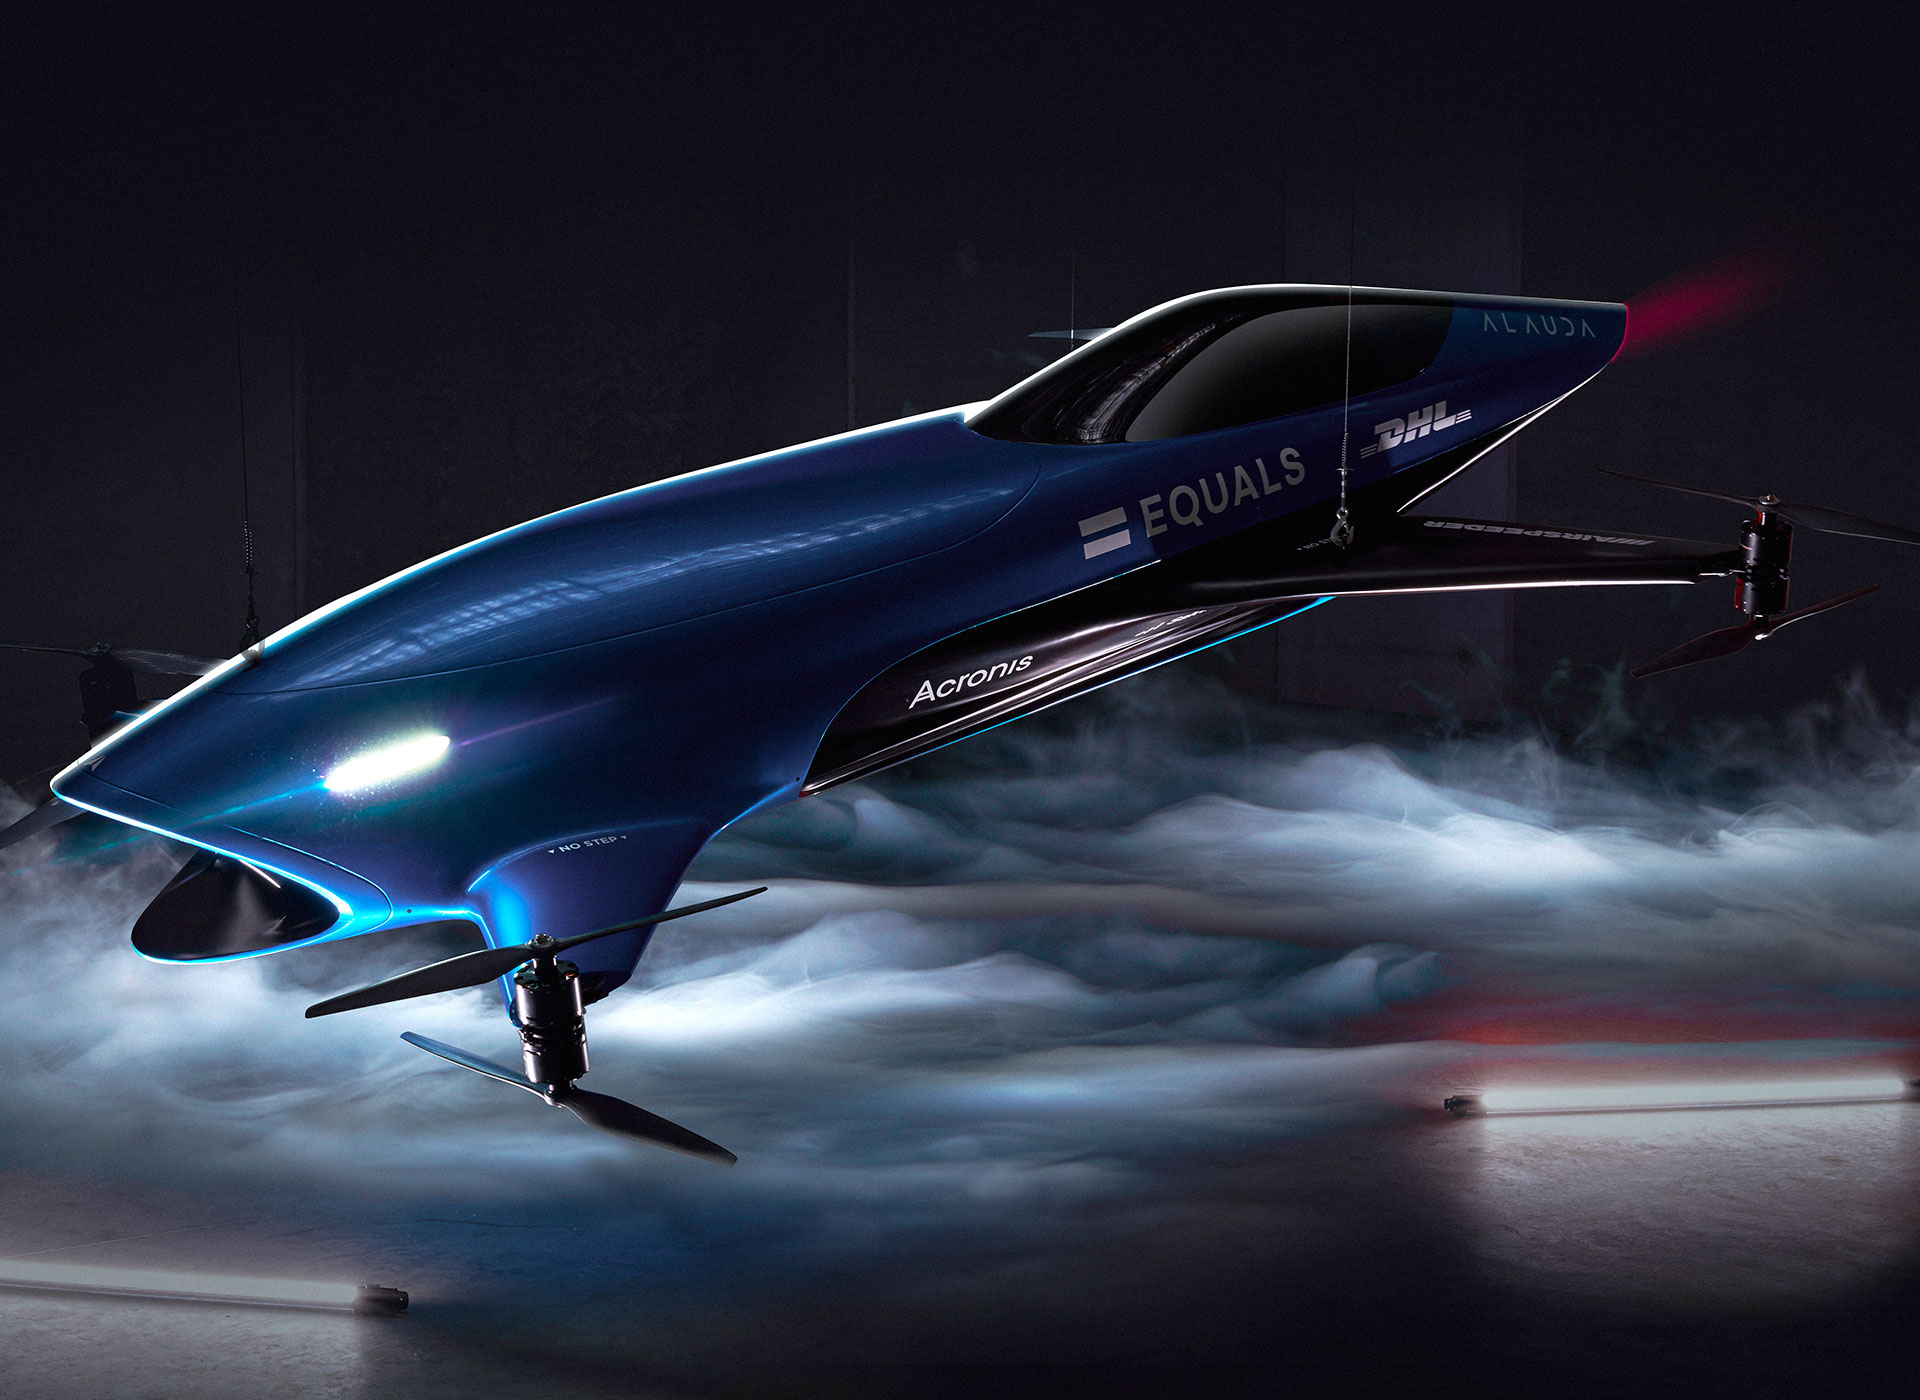 Flying car racing series Airspeeder partners with Acronis